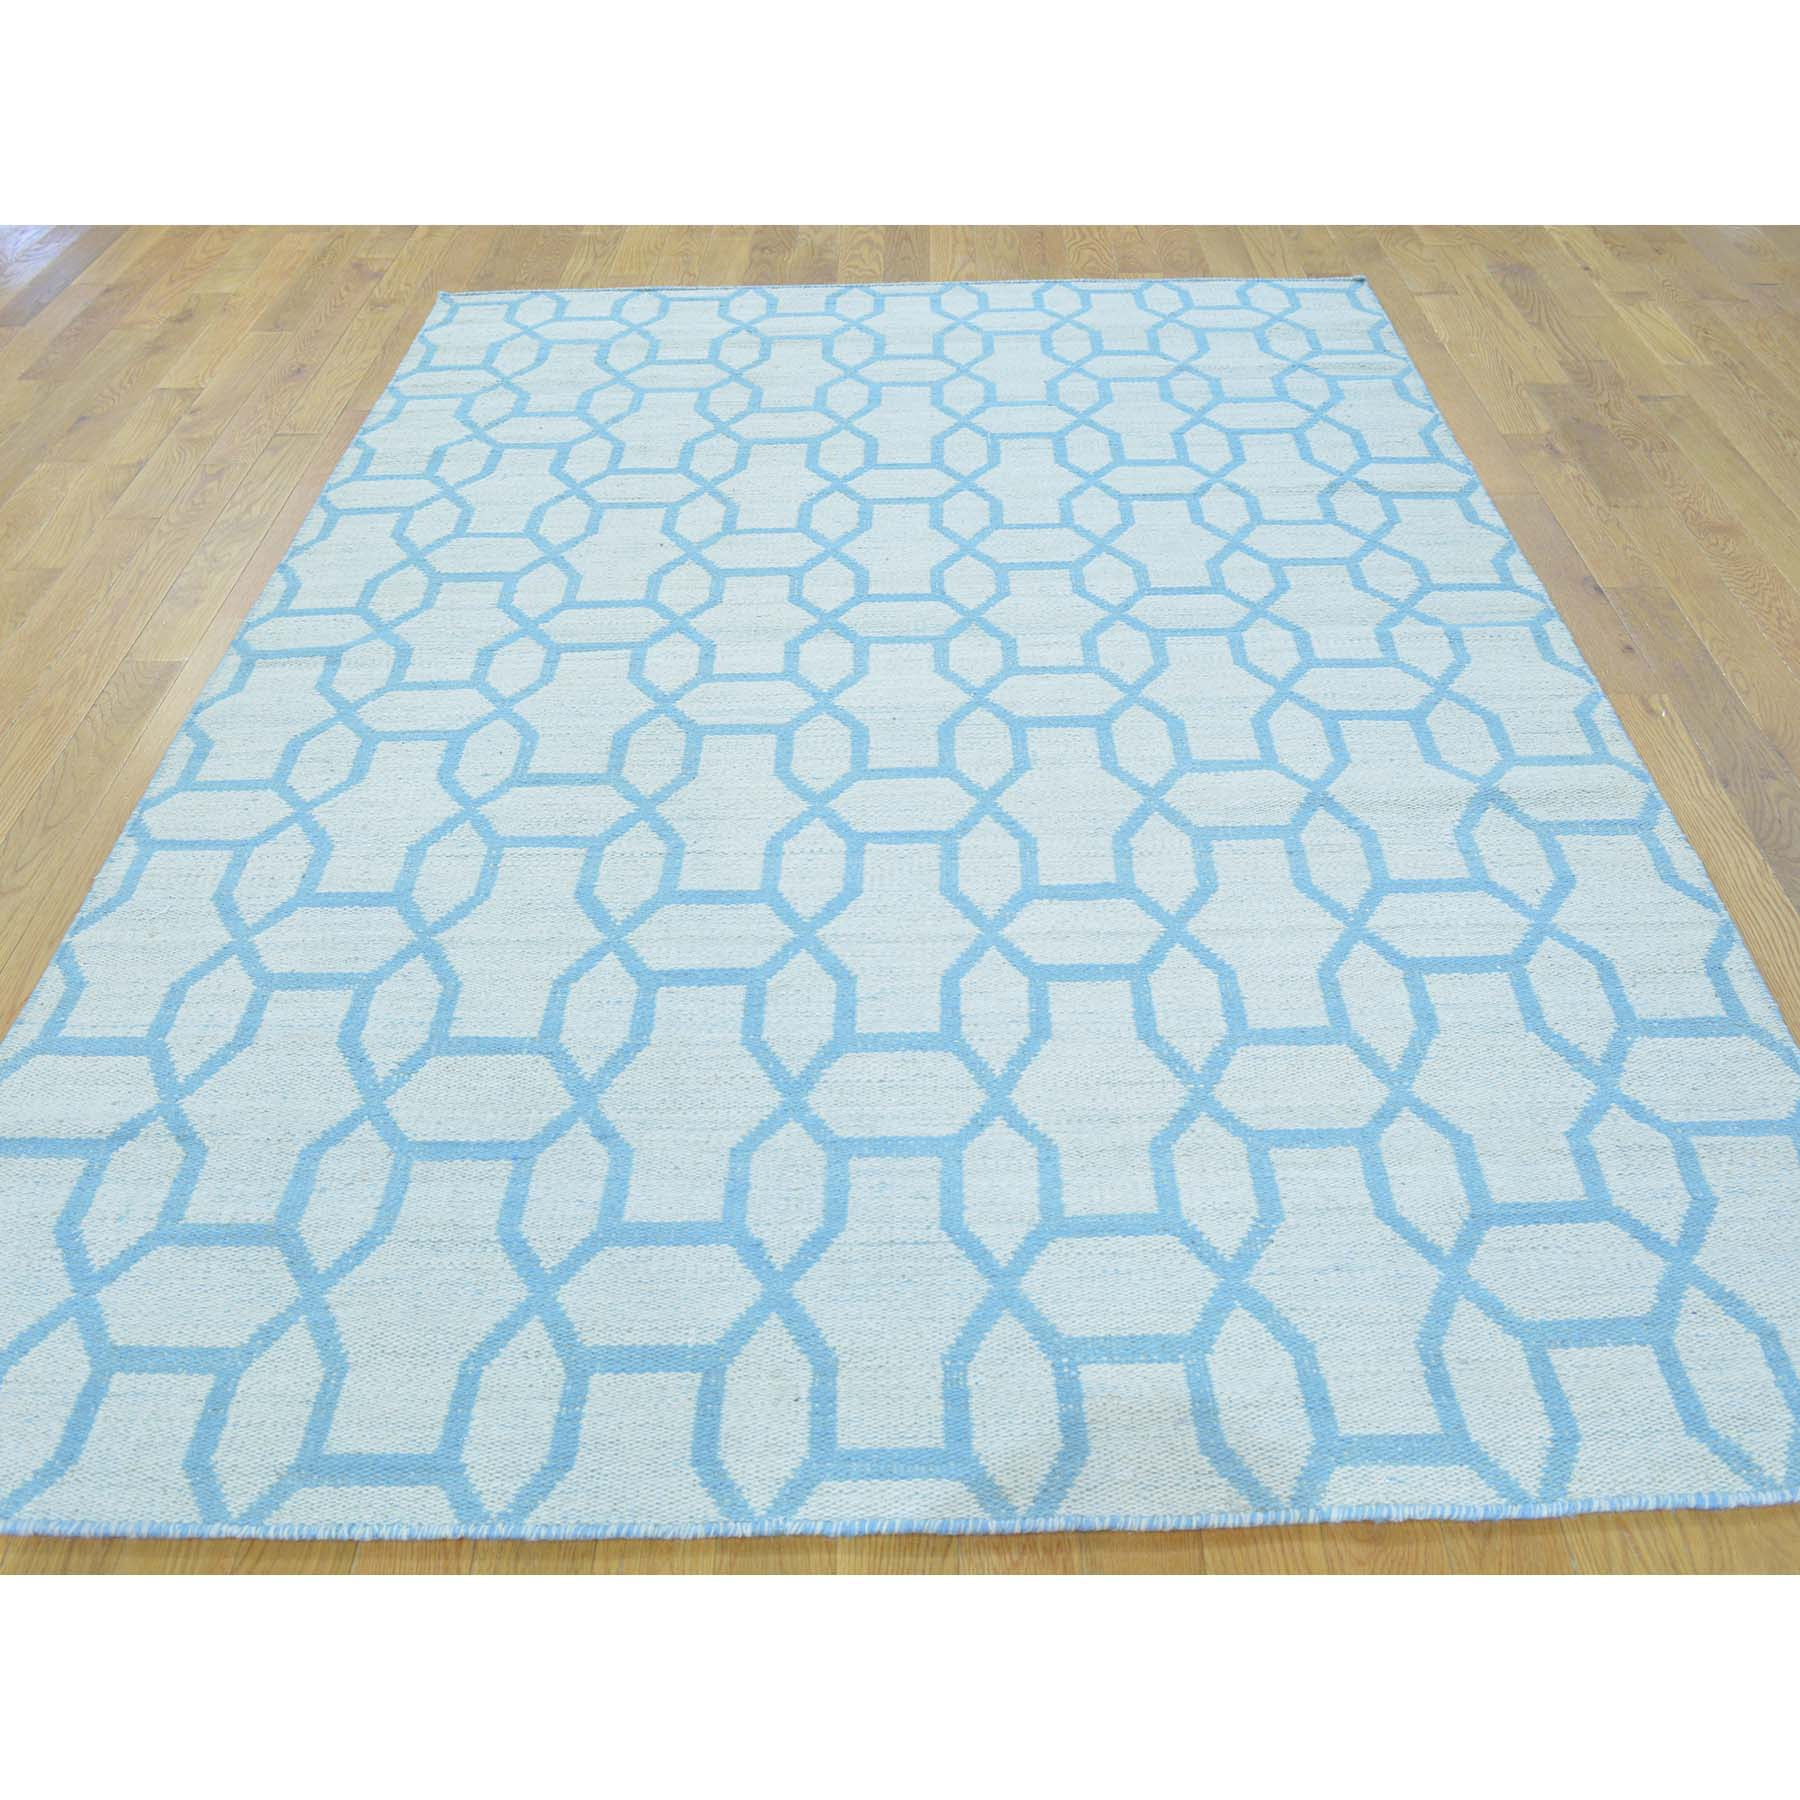 "Handmade Flat Weave Rectangle Rug > Design# SH26403 > Size: 5'-4"" x 7'-9"" [ONLINE ONLY]"